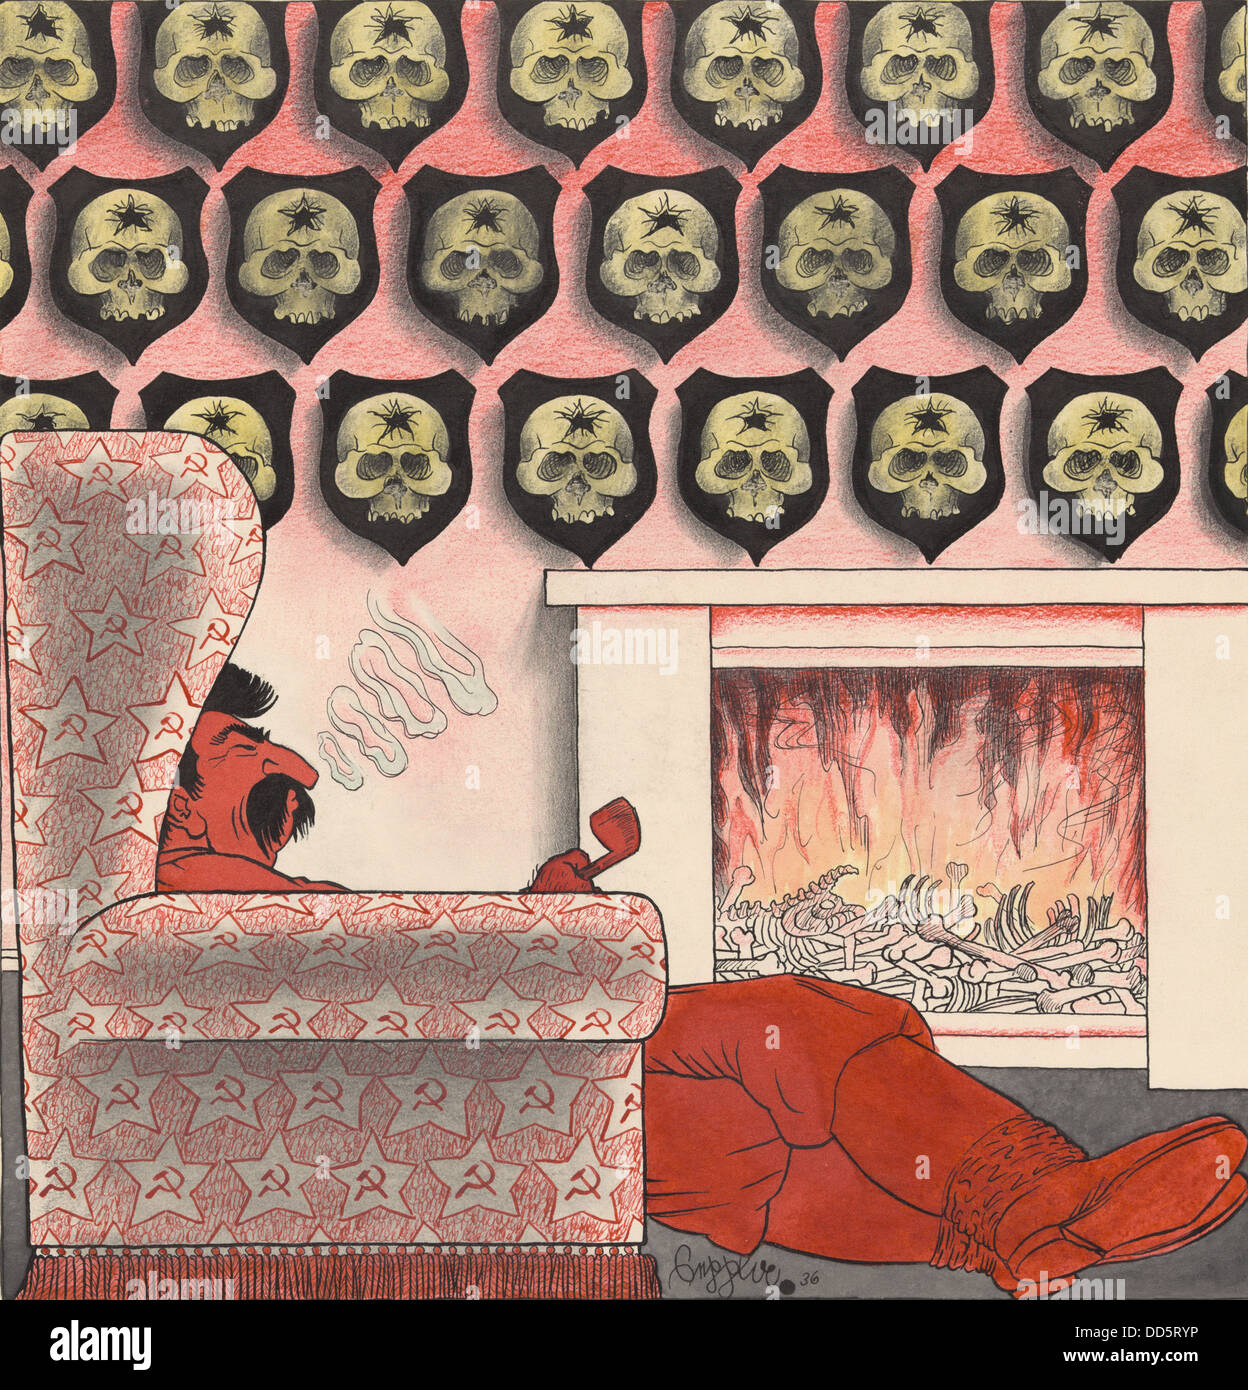 1936 Cartoon on Joseph Stalin's party purges. Stalin sits in front of a fireplace filled with bones. Human skulls - Stock Image